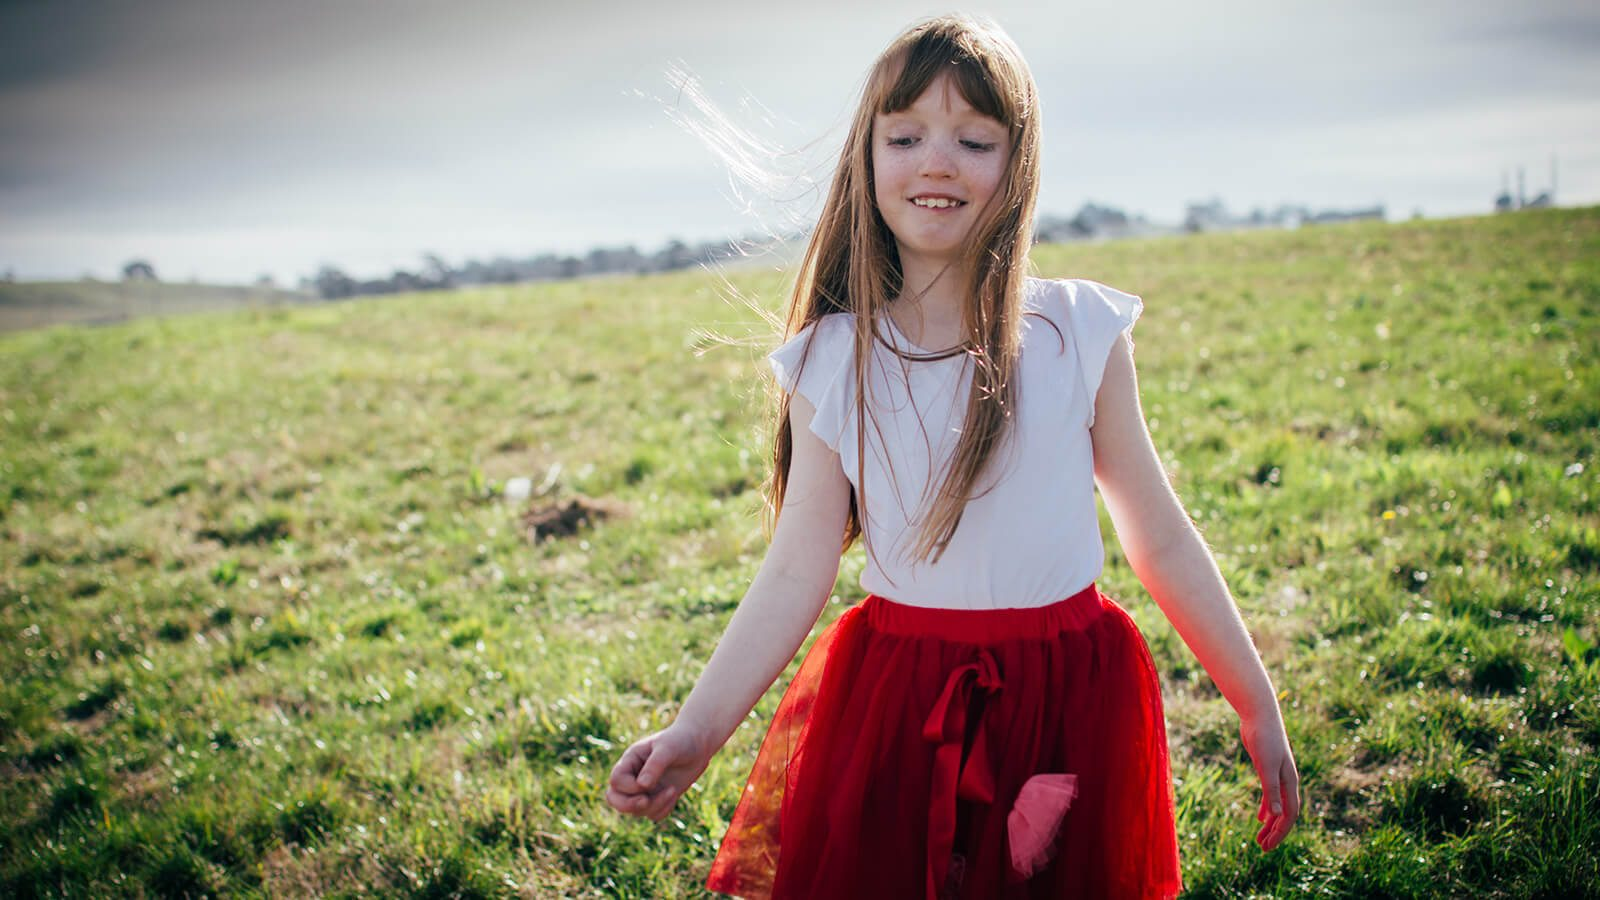 april's style picture of girl in a field